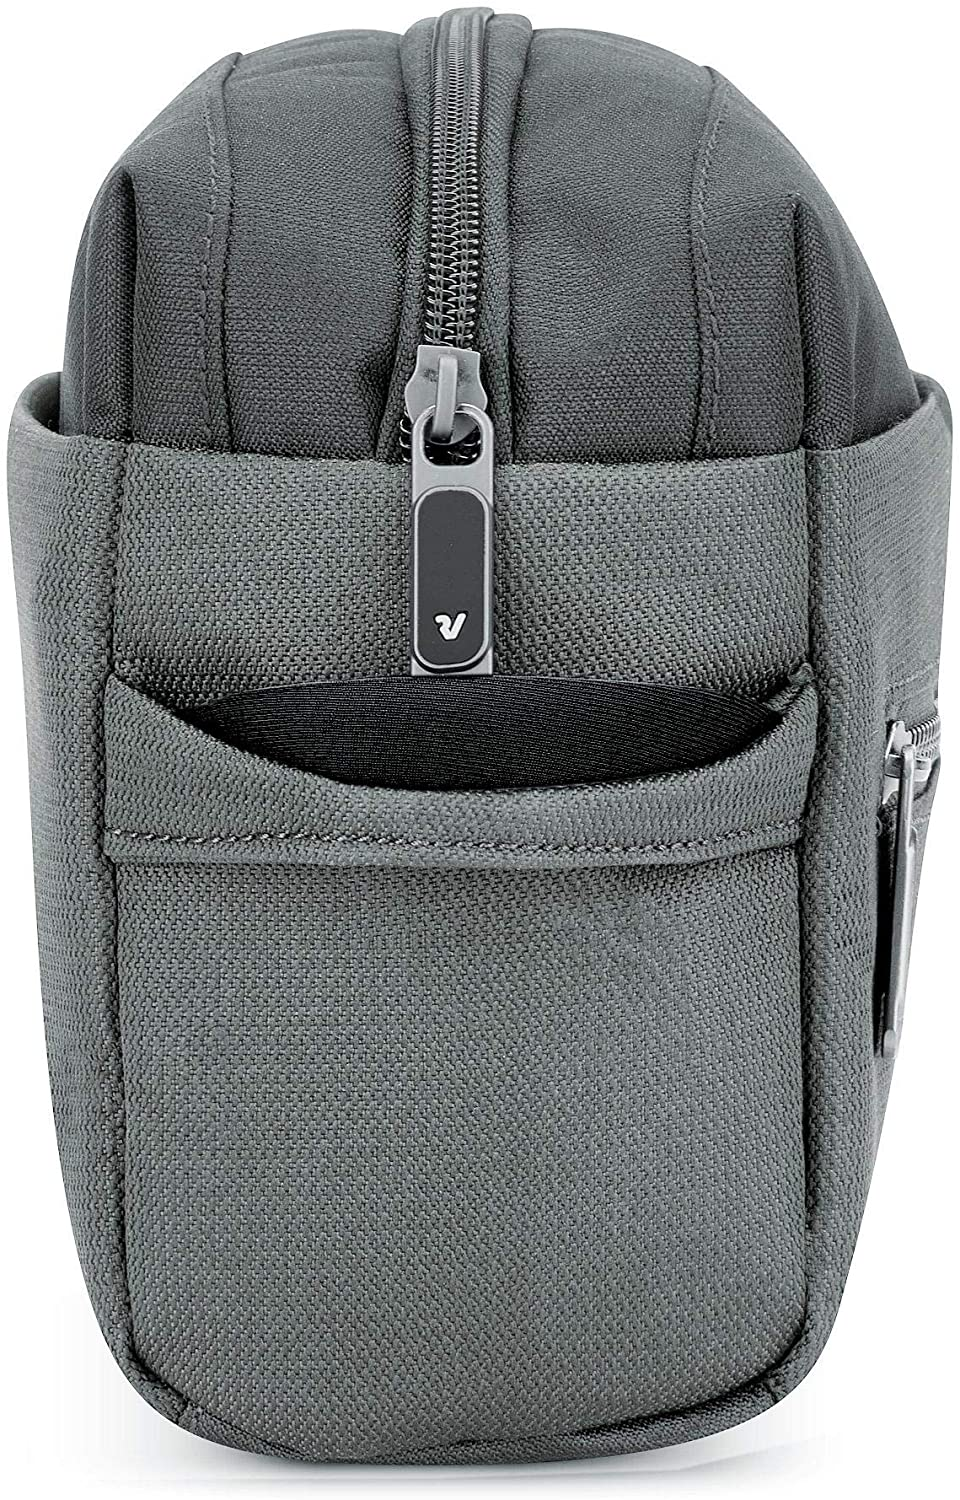 Roncato Sidetrack Necessary Bag / Handheld Bag